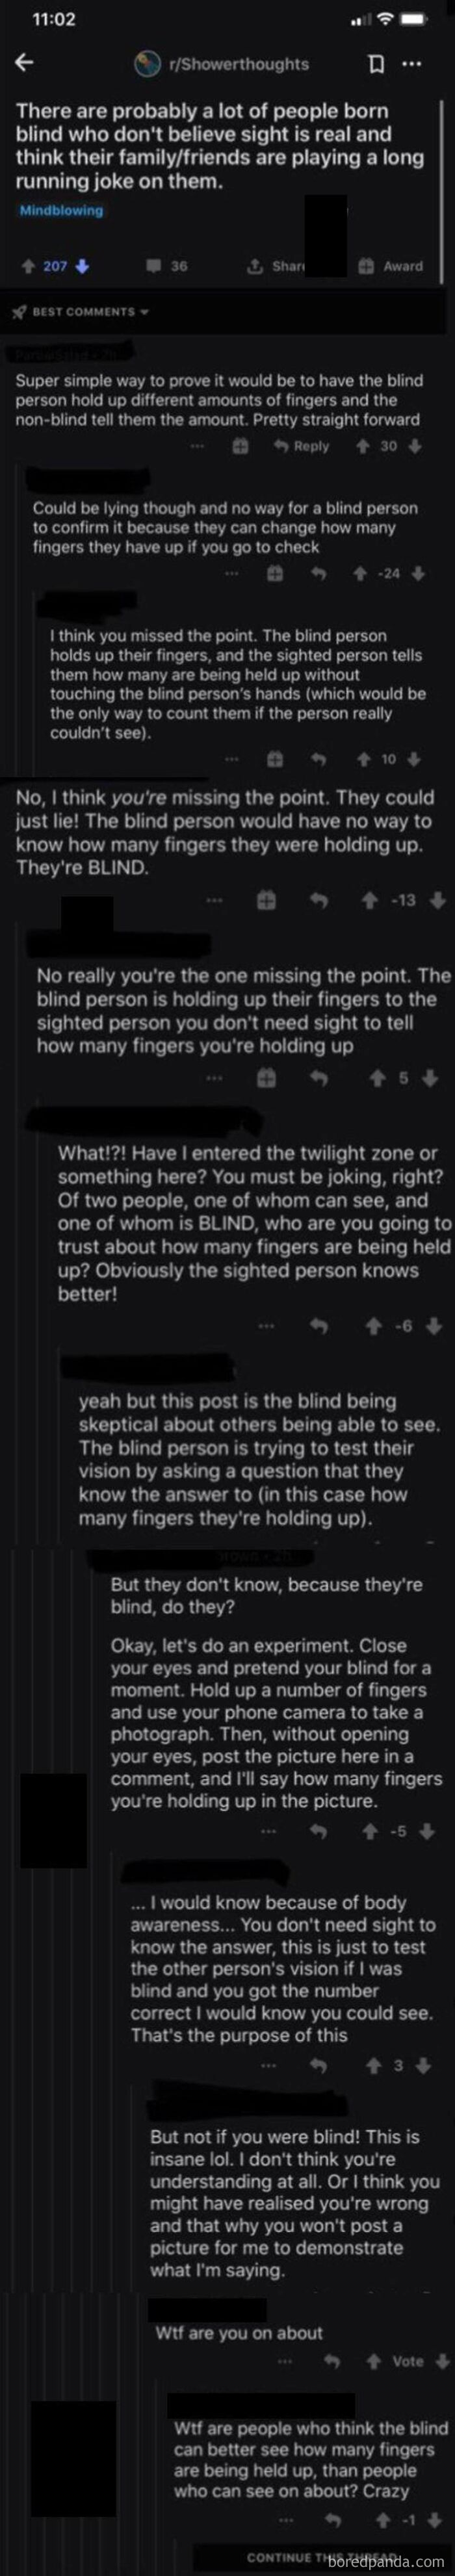 Confidently Argued Blind People Couldn't Feel Their Own Fingers